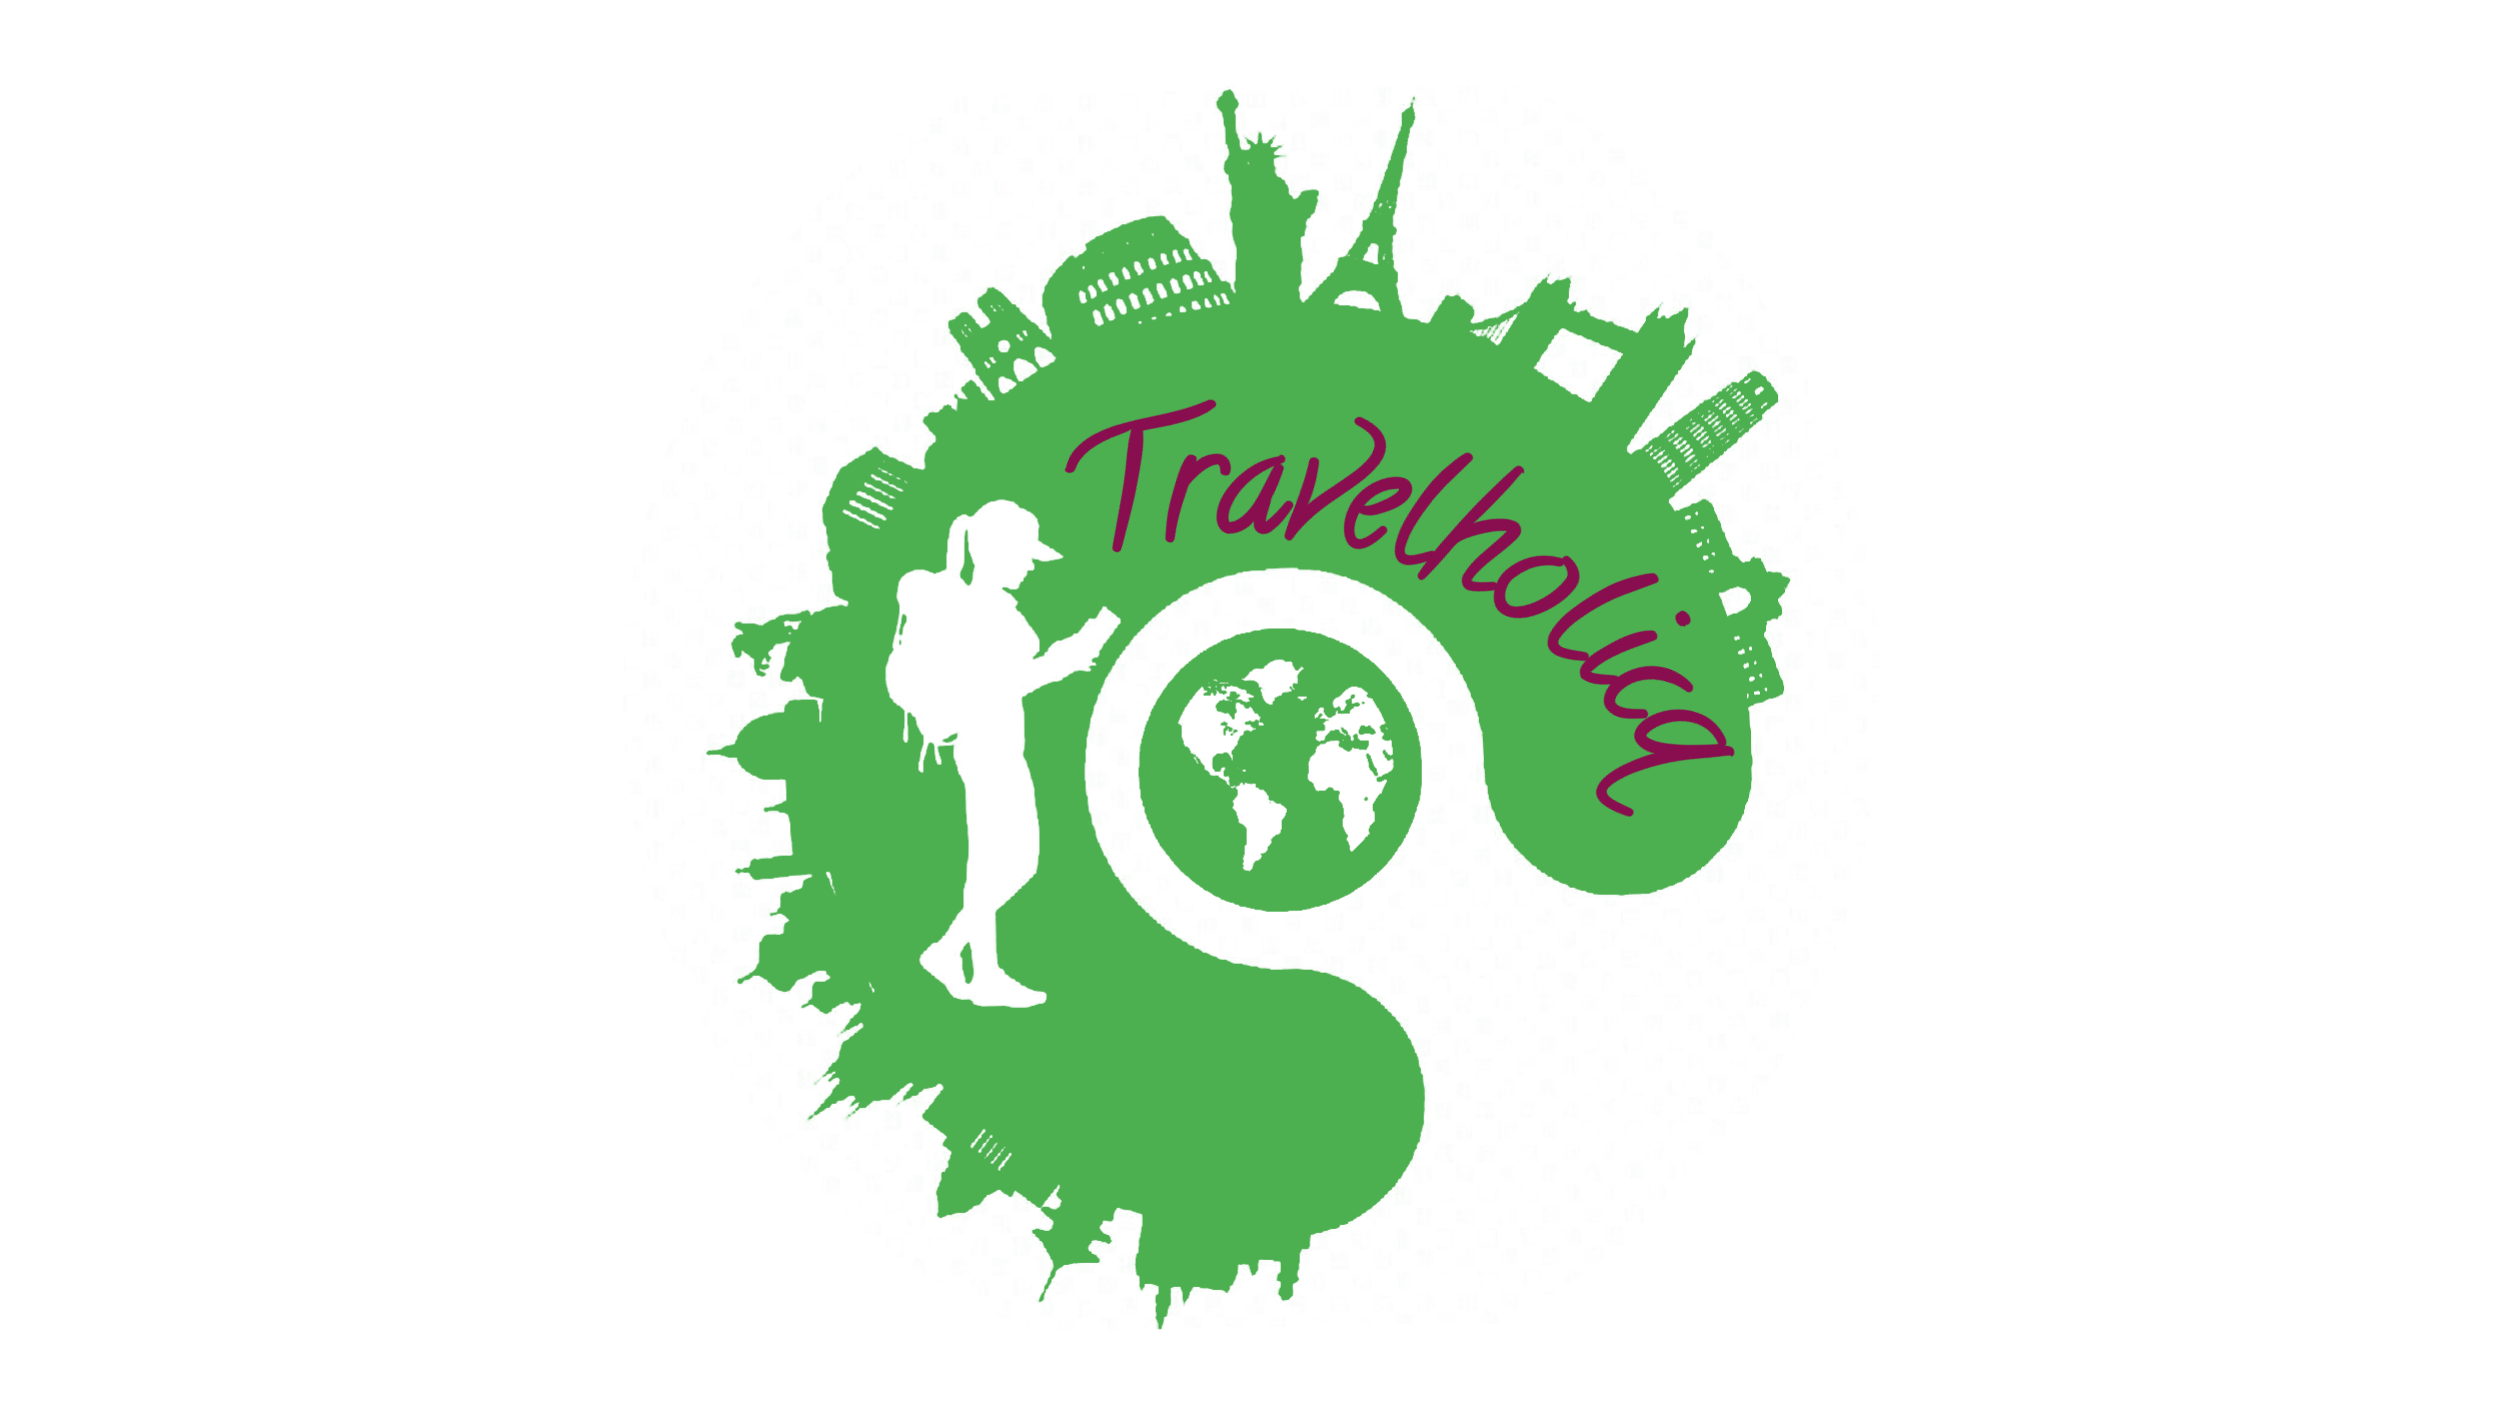 Travelholicq